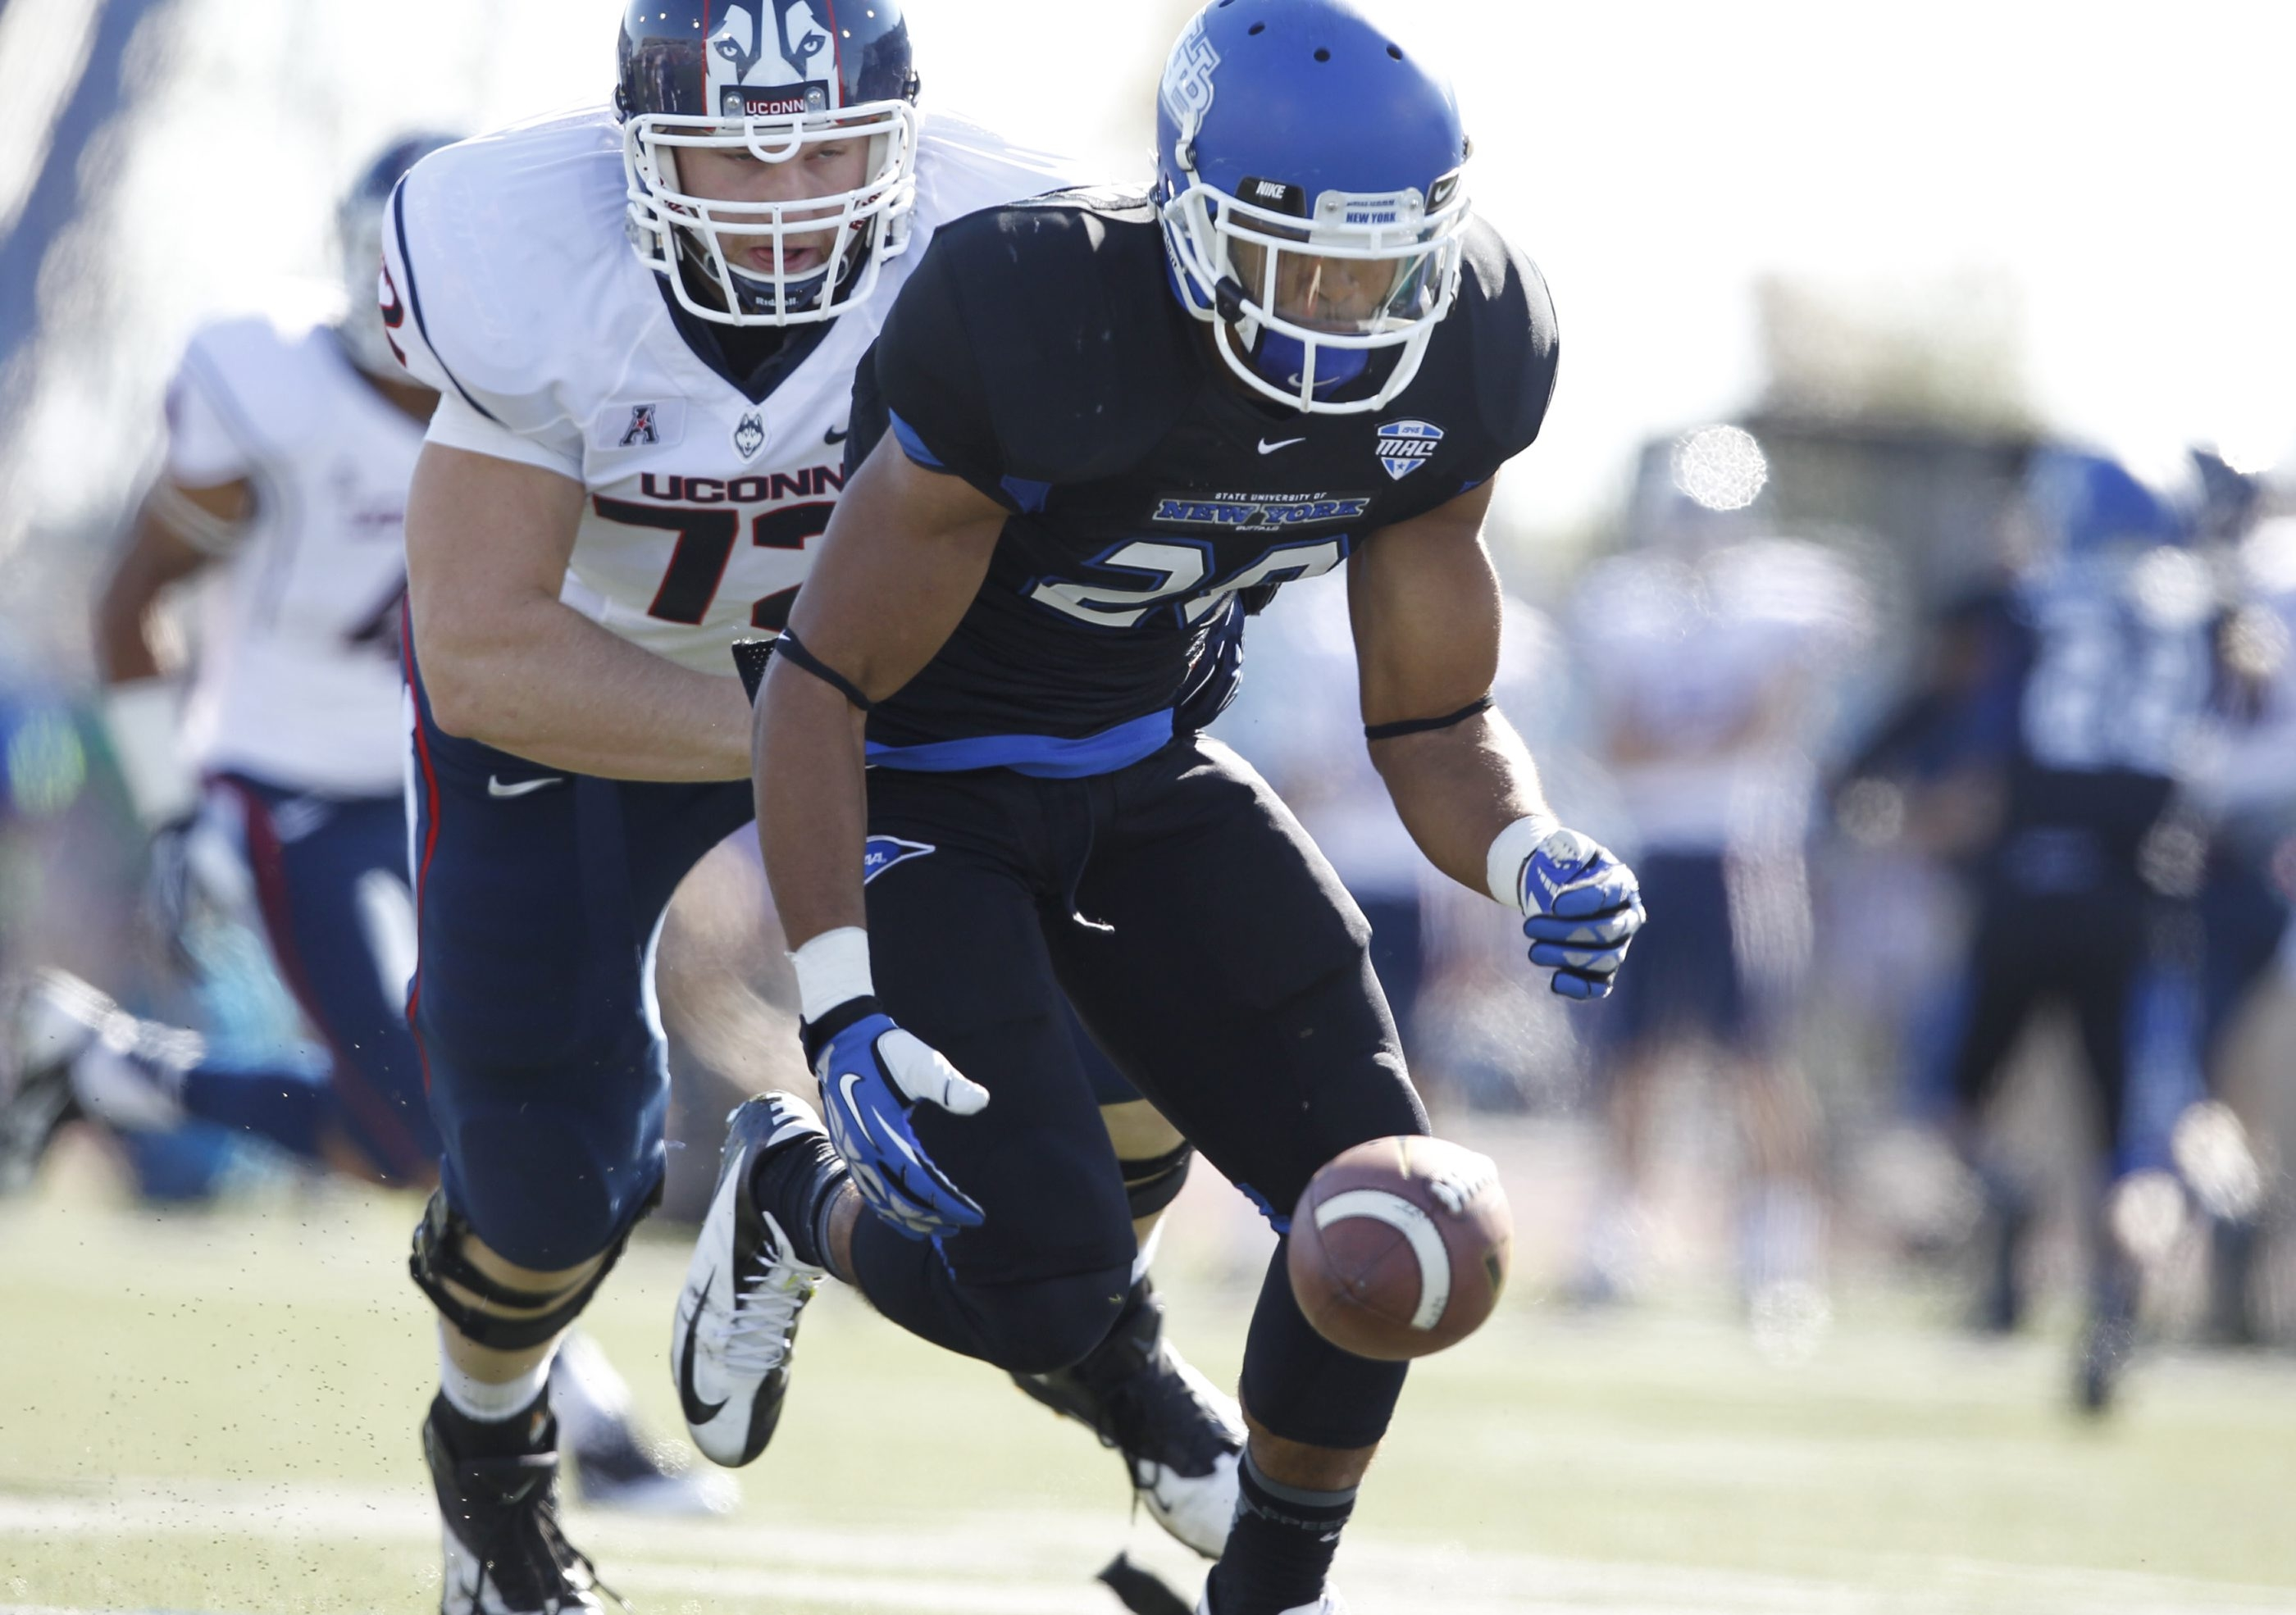 Adam Redden, shown recovering a fumble, can't wait to return to action when his UB Bulls host Bowling Green on Friday.